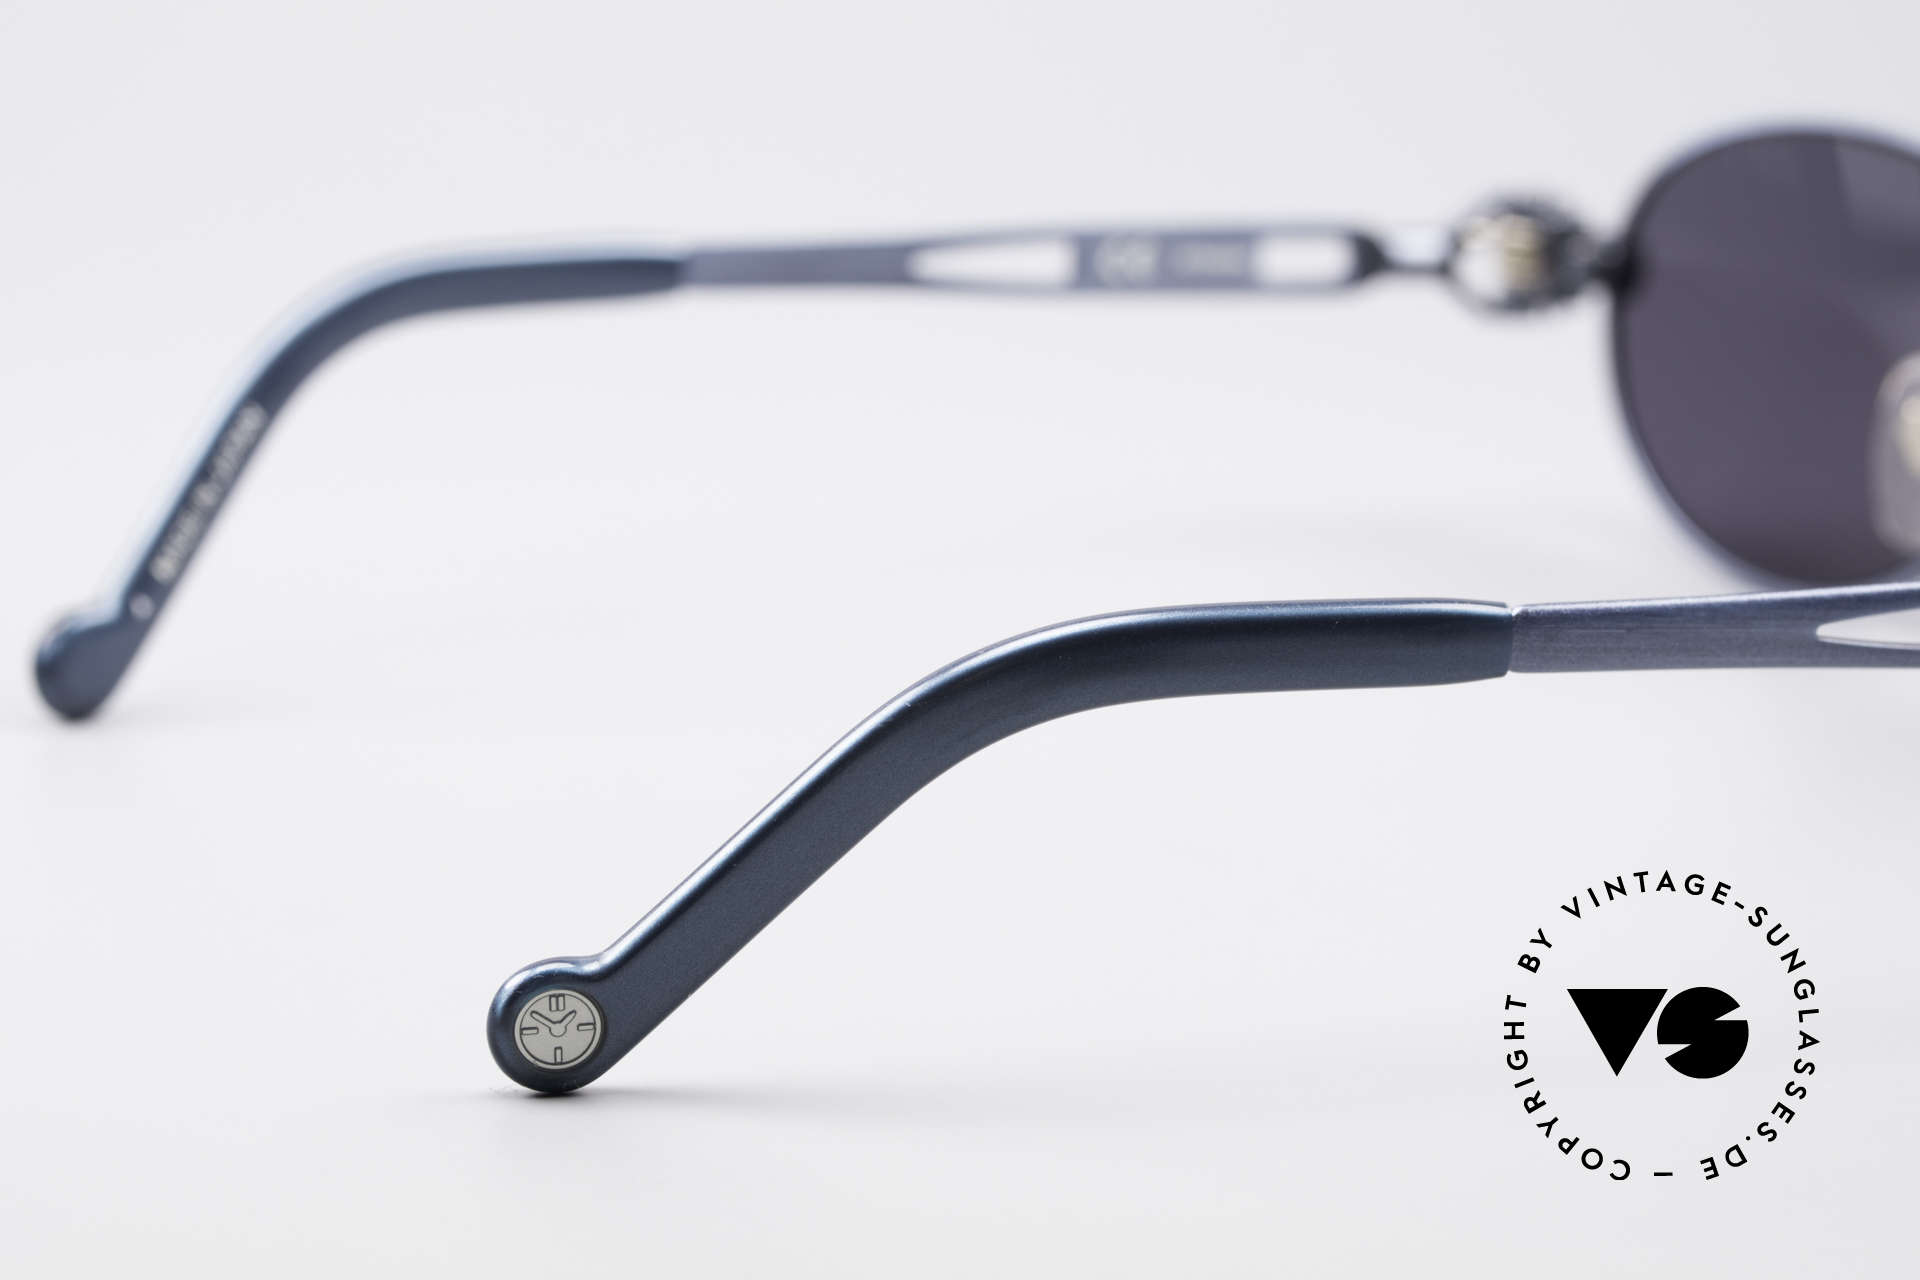 Jean Paul Gaultier 56-8102 Oval Industrial Sunglasses, Size: medium, Made for Men and Women